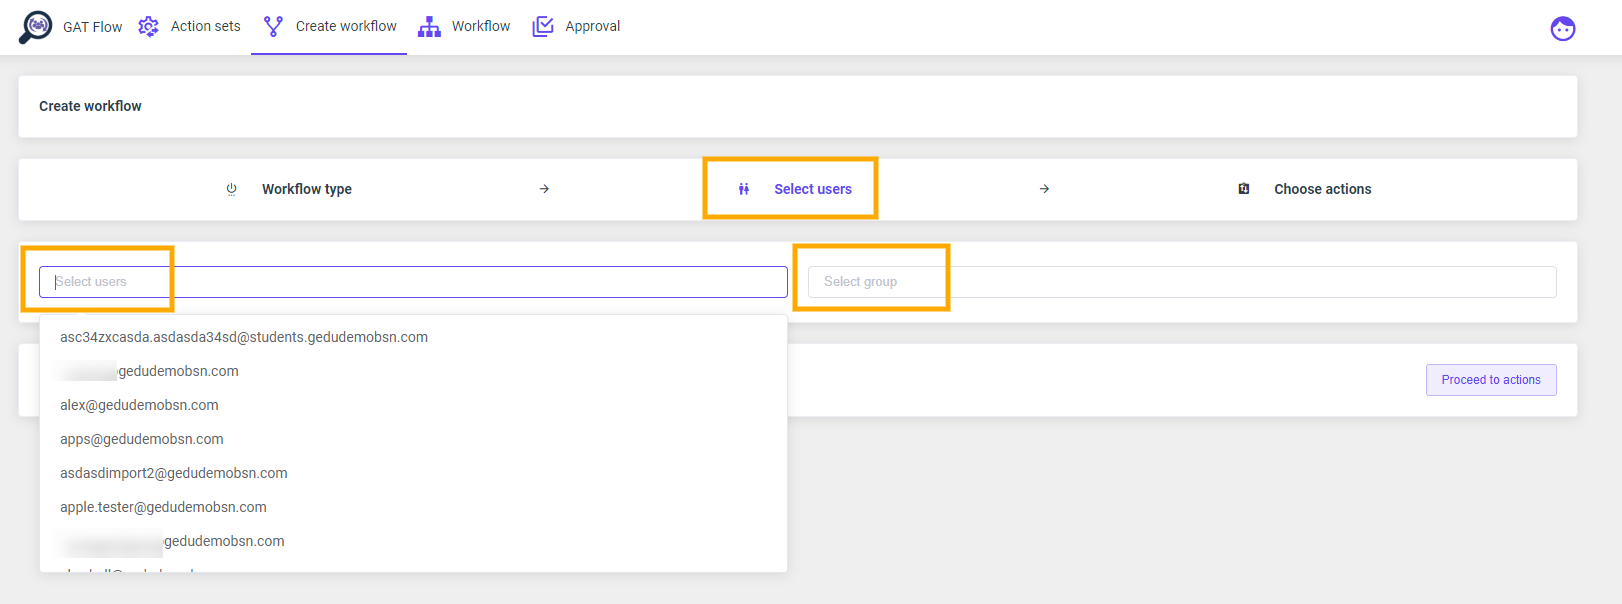 GAT Flow: Create an action set for Offboarding G Suite users 8